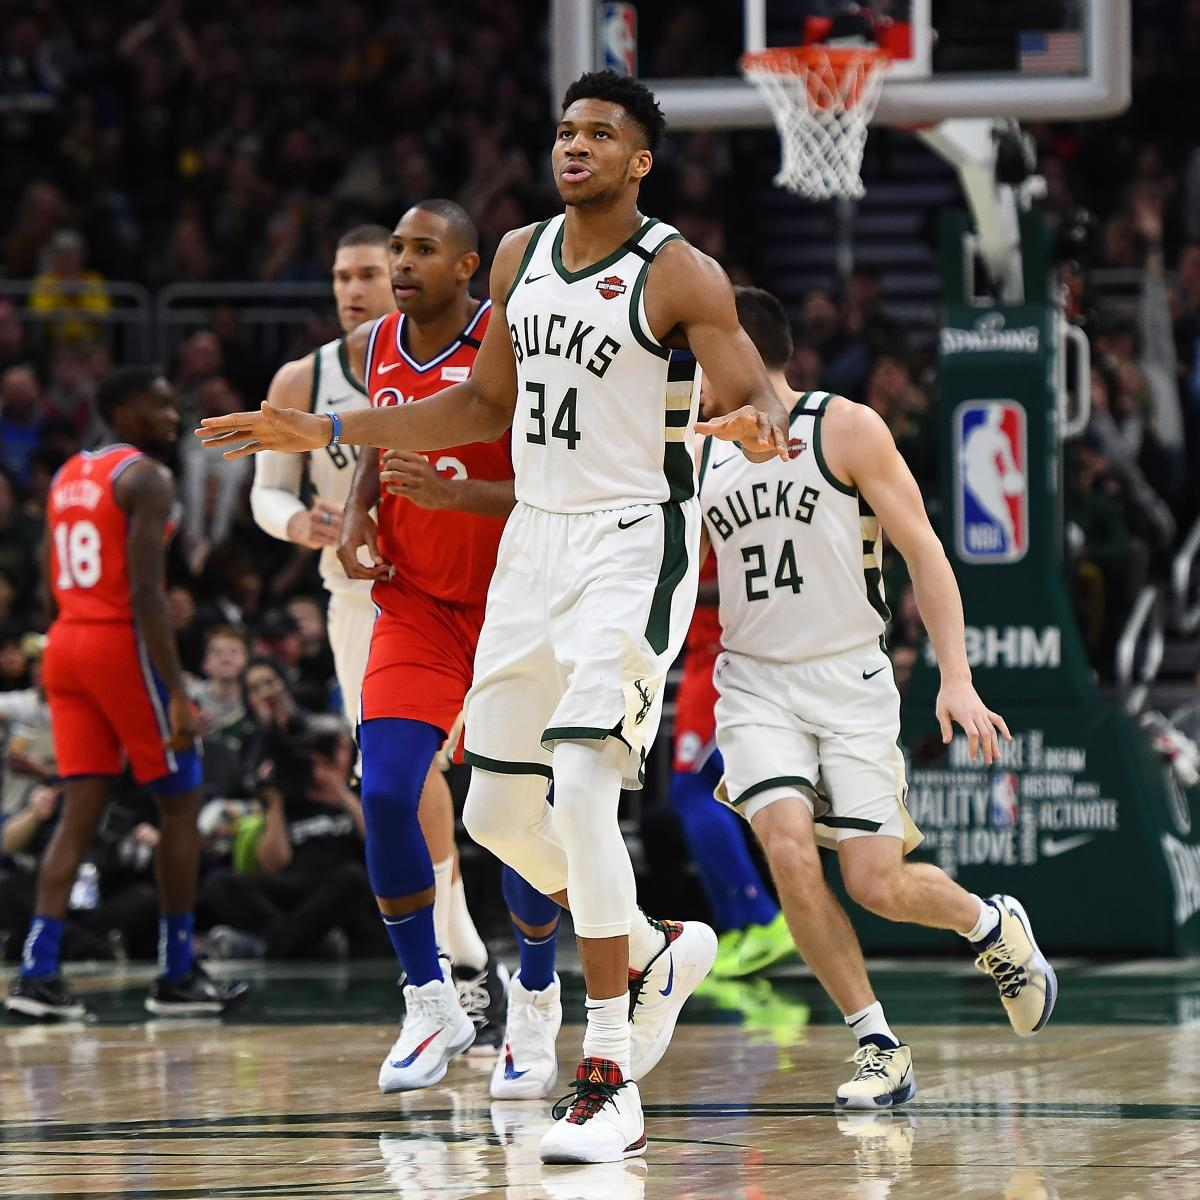 NBA Power Rankings: Can Anyone Catch Giannis Antetokounmpo and the Bucks?